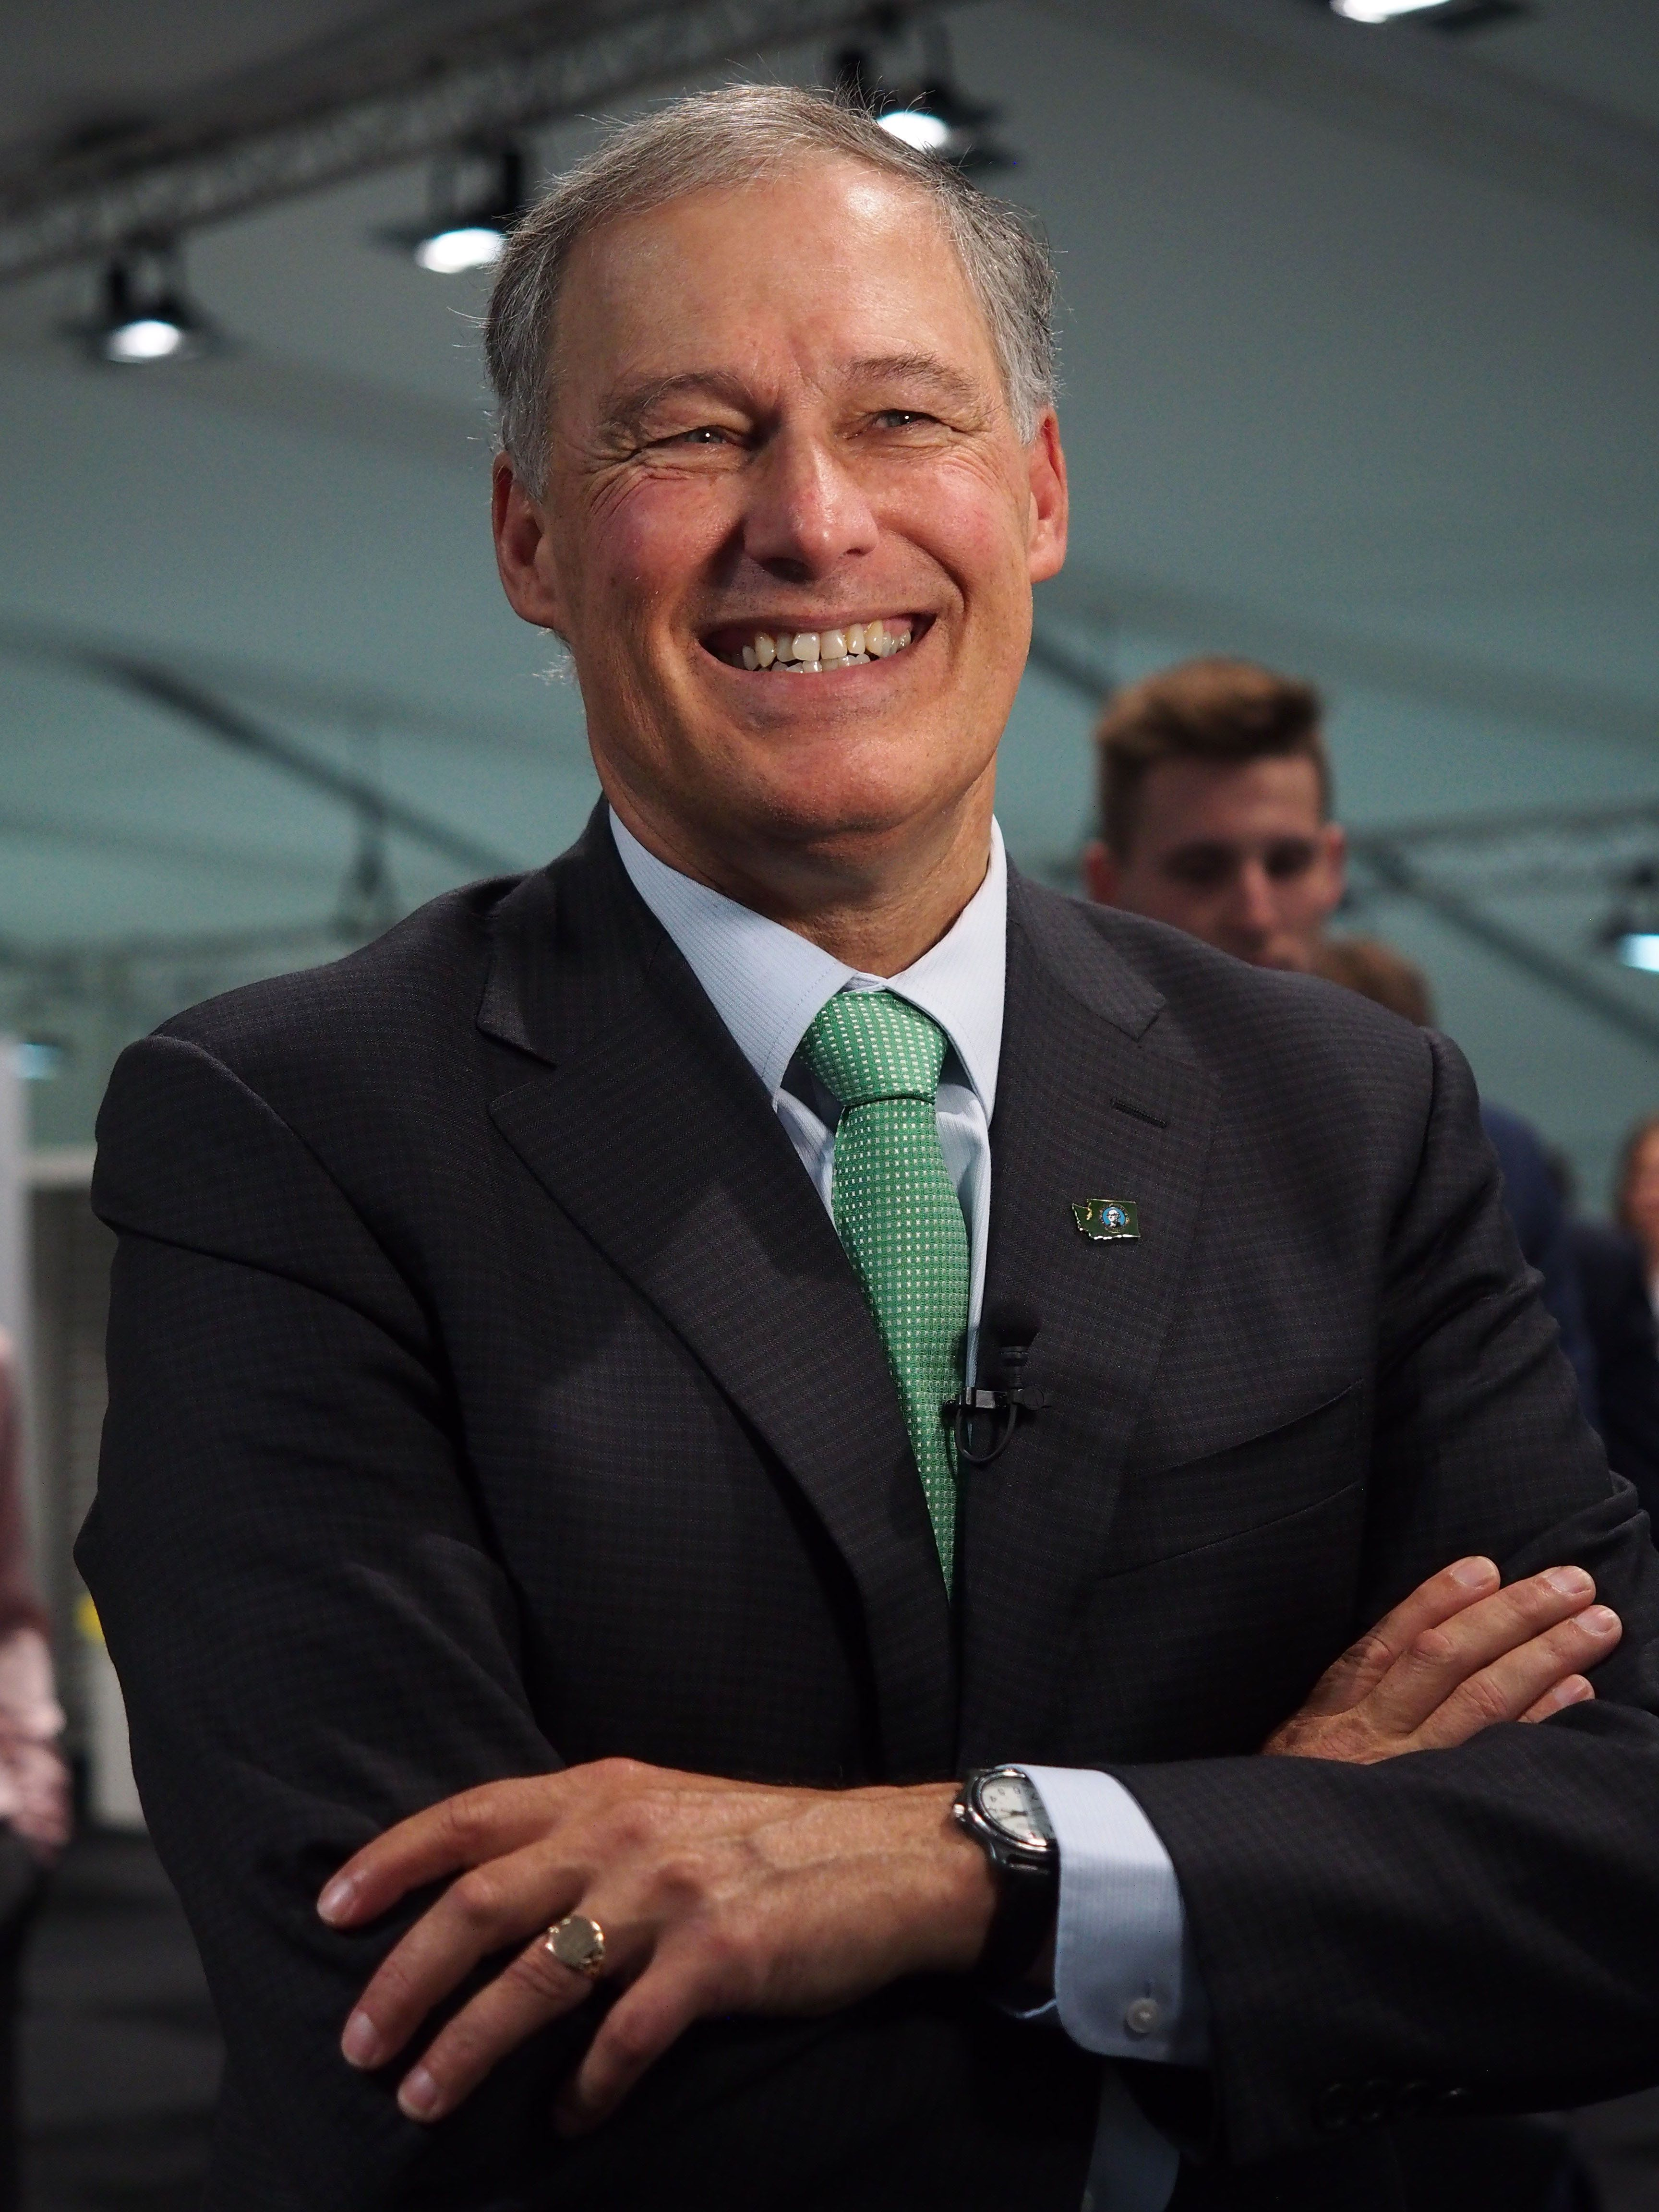 BONN, NORTH RHINE-WESTPHALIA, GERMANY - 2017/11/13: Jay Robert Inslee, governor of Washington, speaking at the United Nations Framework Convention on Climate Change - UNFCCC - COP23. (Photo by Fotoholica Press/LightRocket via Getty Images)